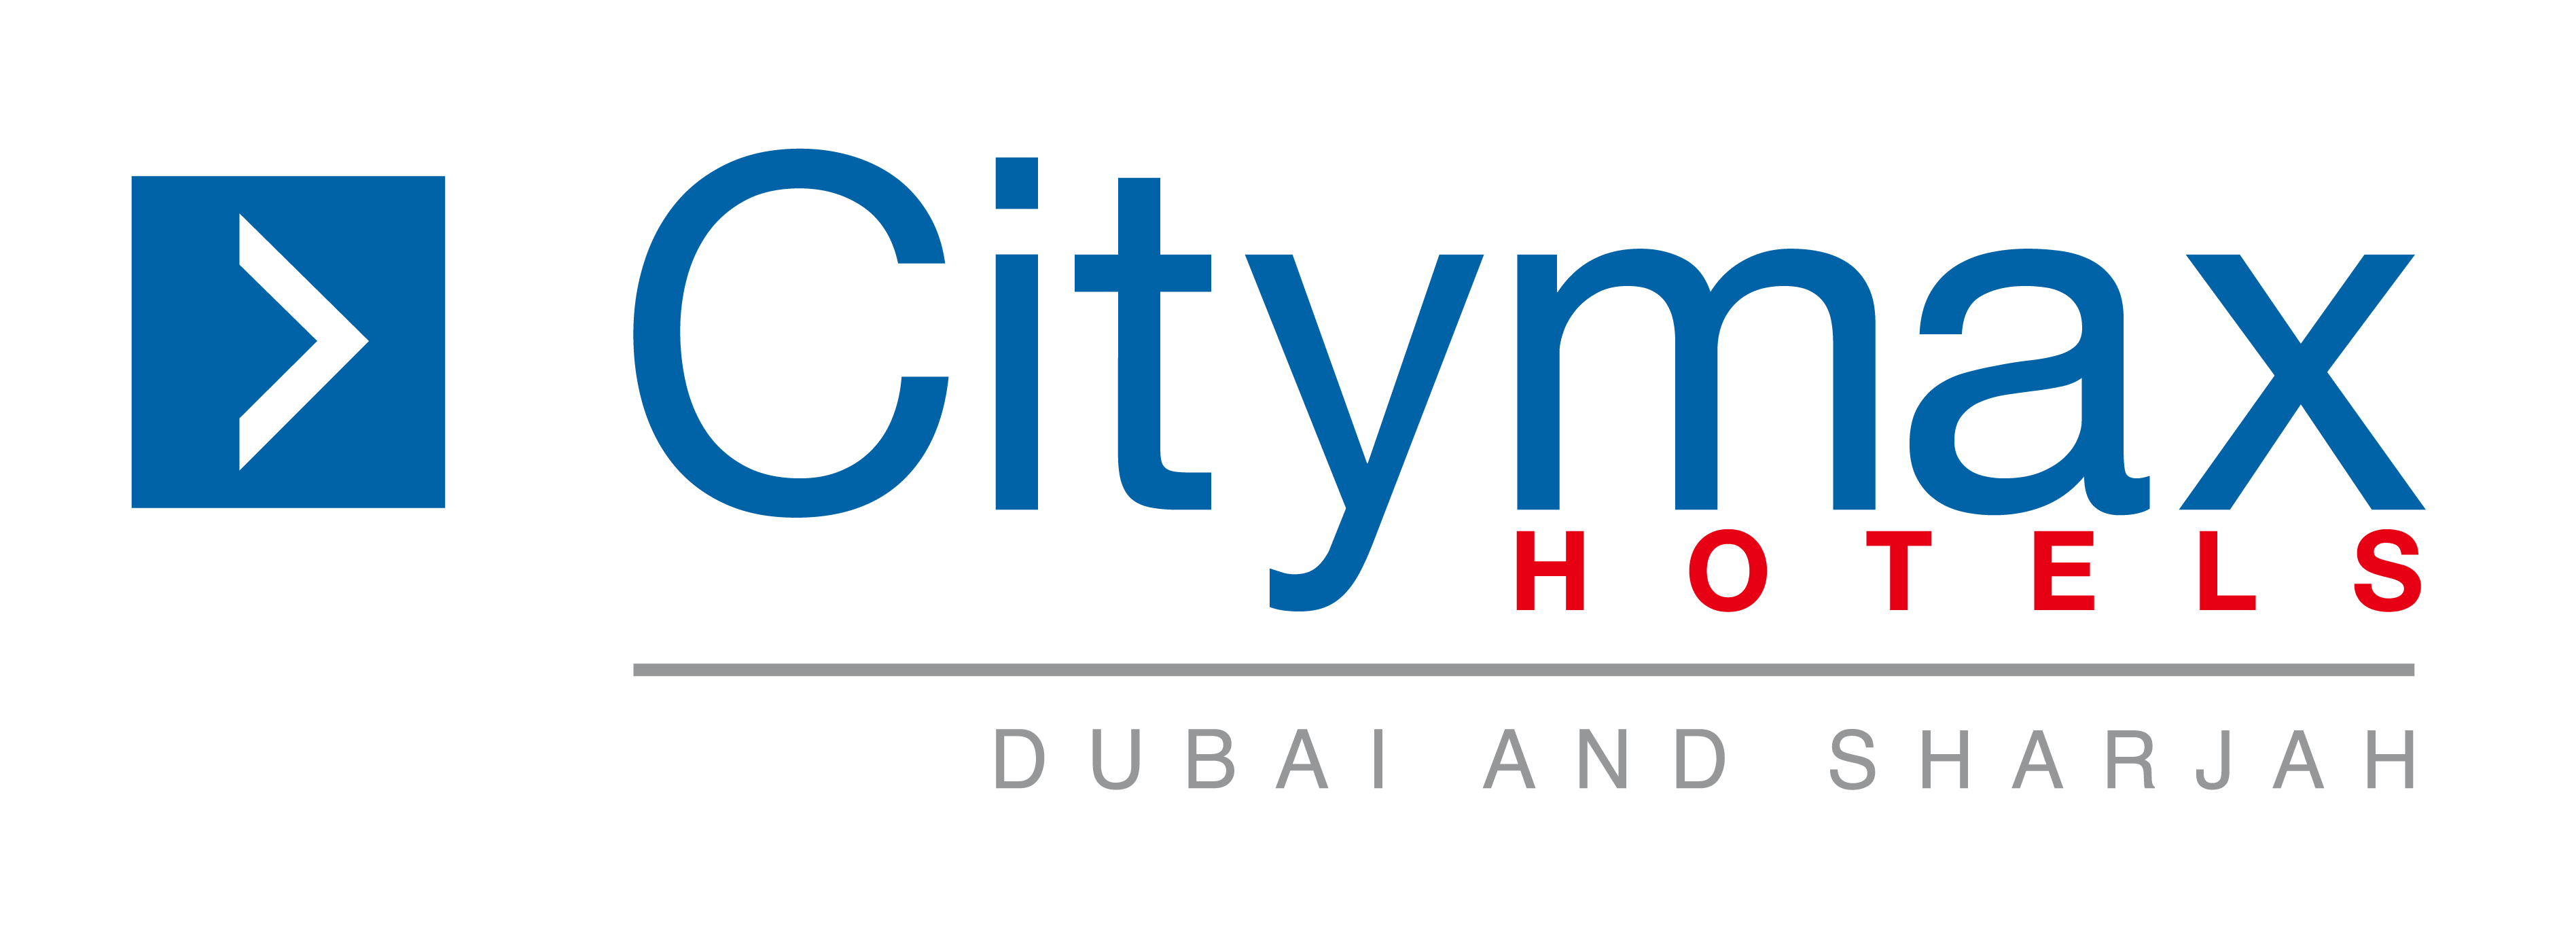 Citymax Hotel F&B Outlets